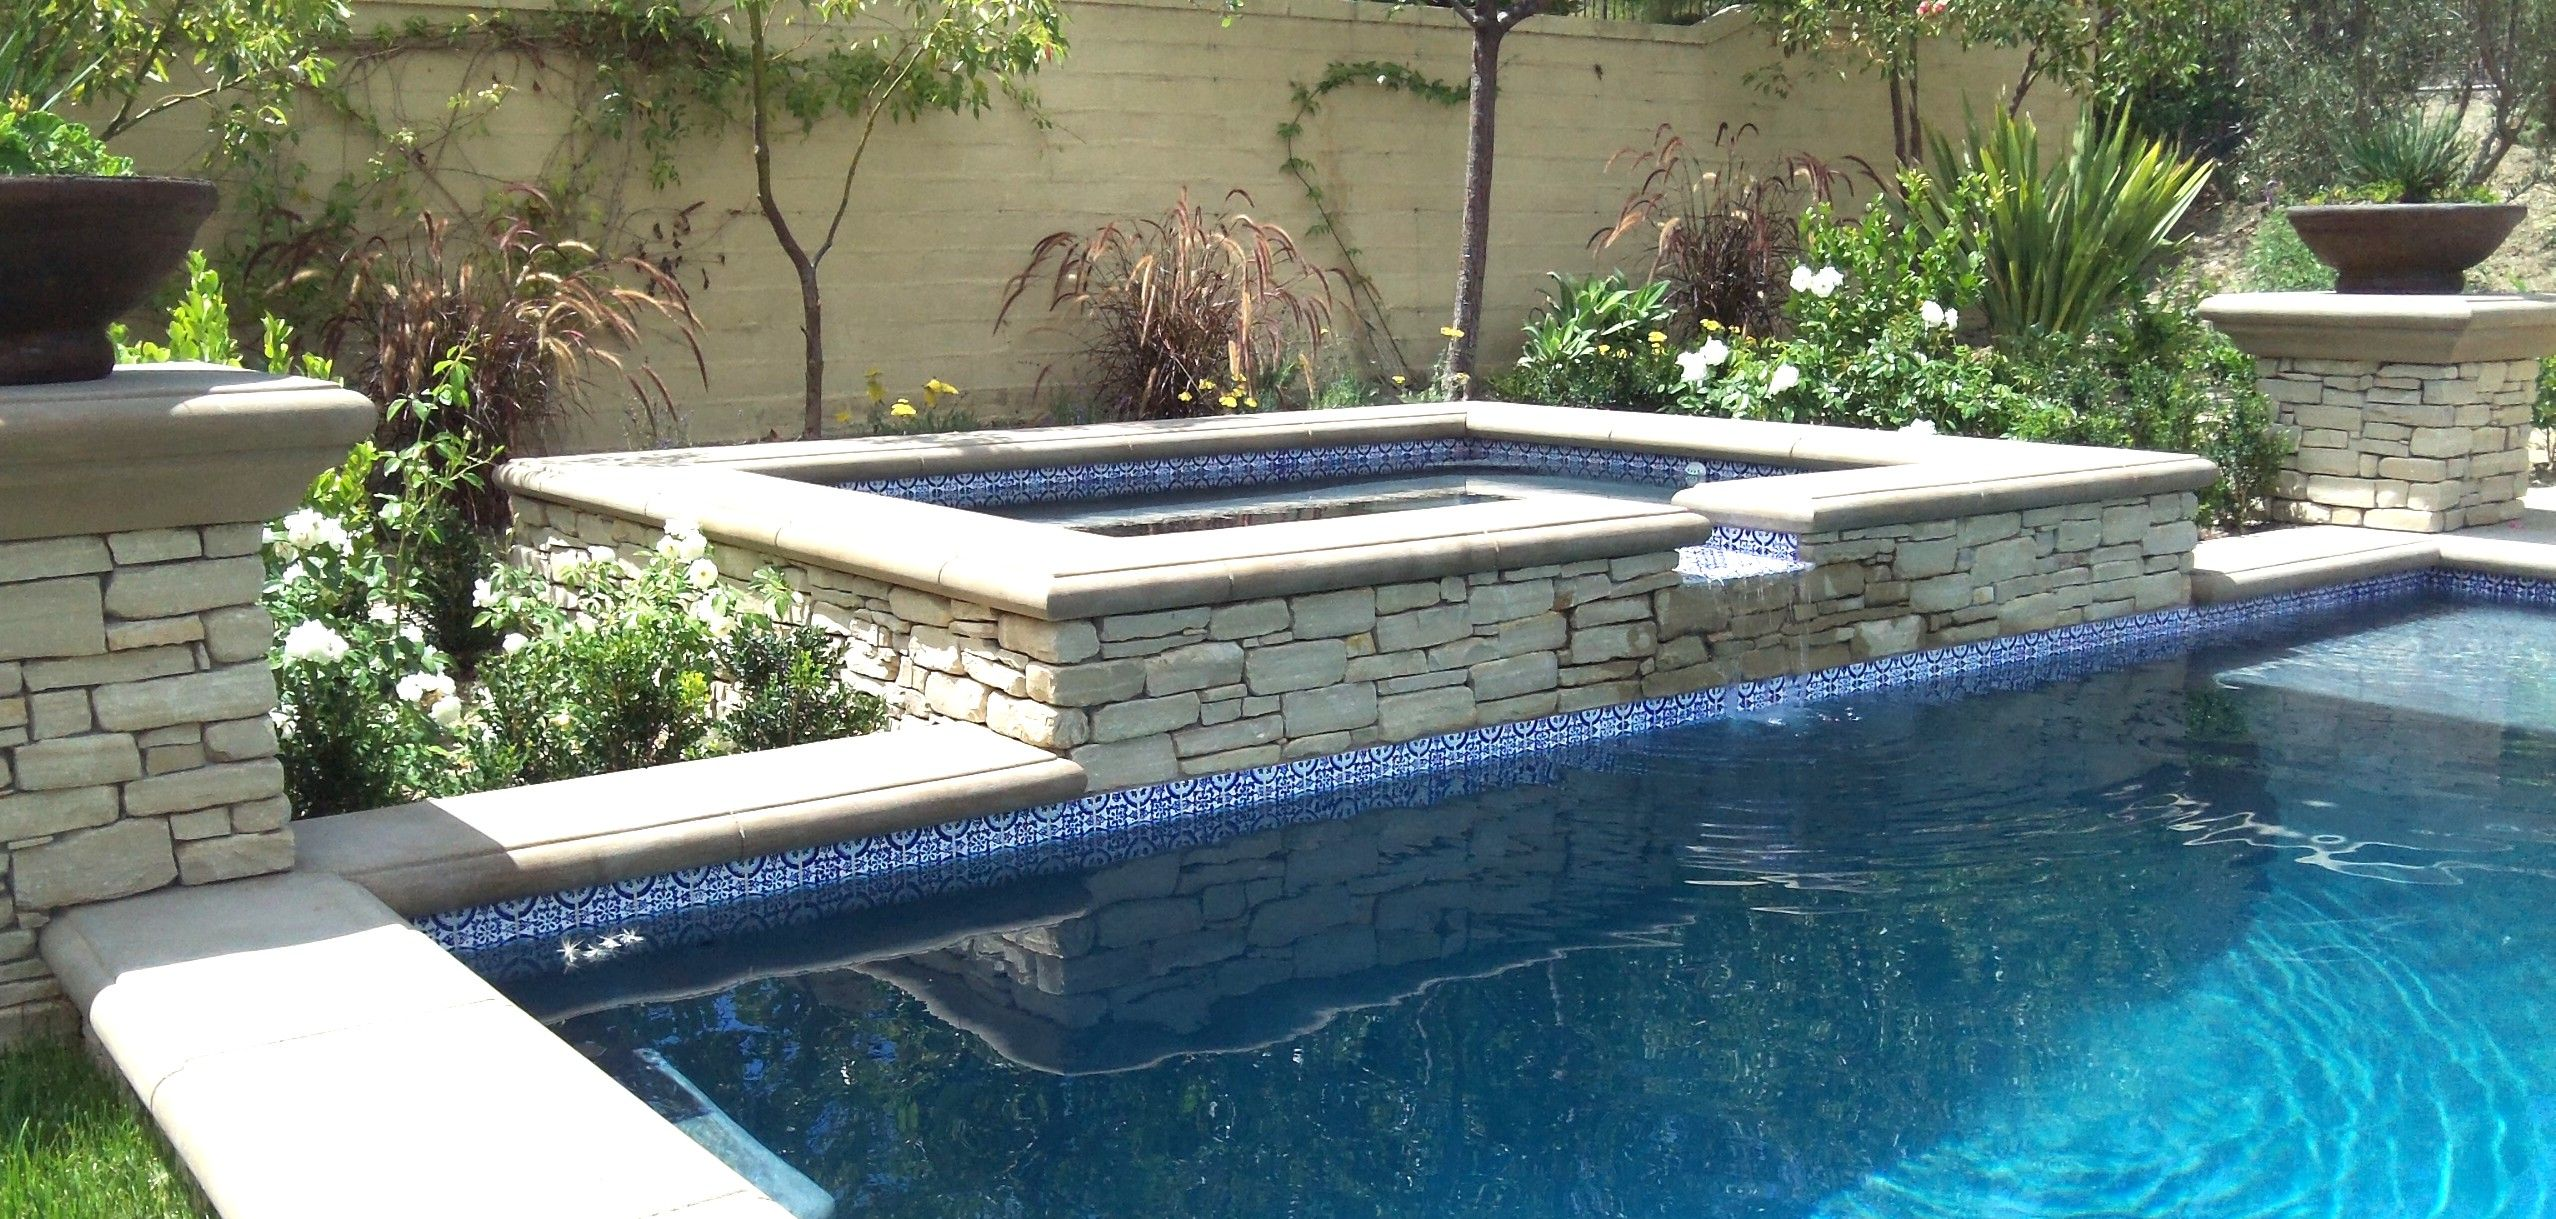 Pool tile designs pool water fountain design ideas small Pool design plans